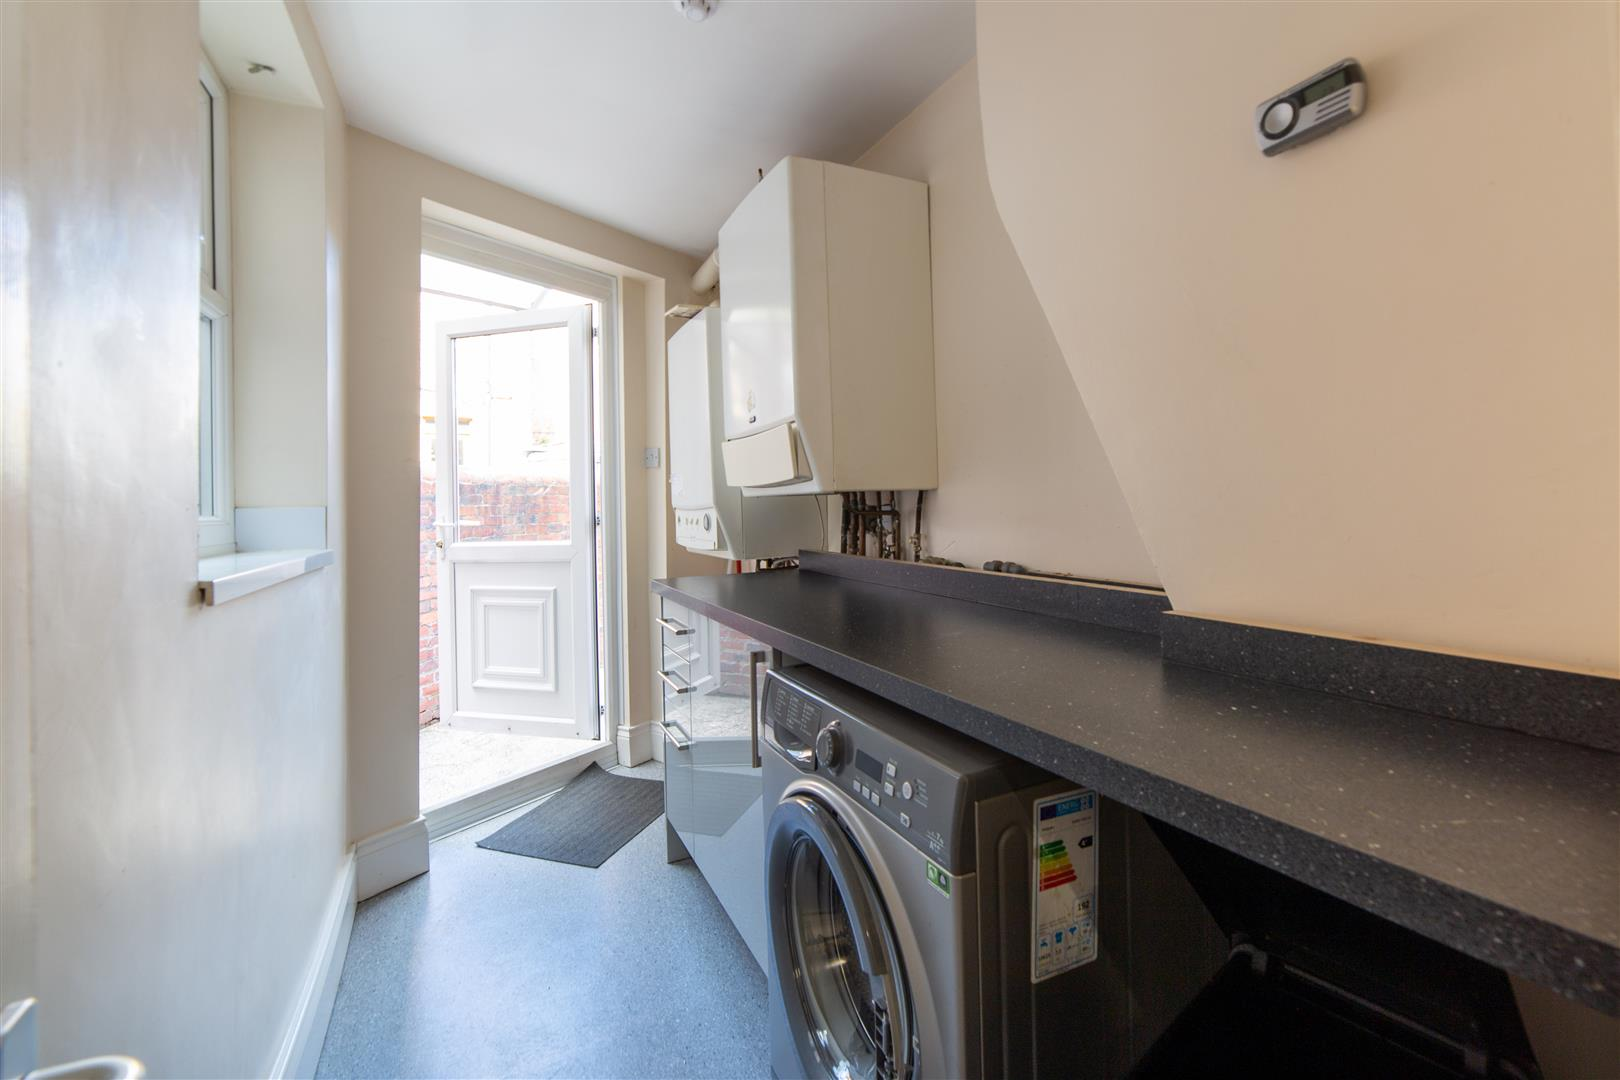 8 bed terraced house to rent in Newcastle Upon Tyne, NE2 1JS  - Property Image 22